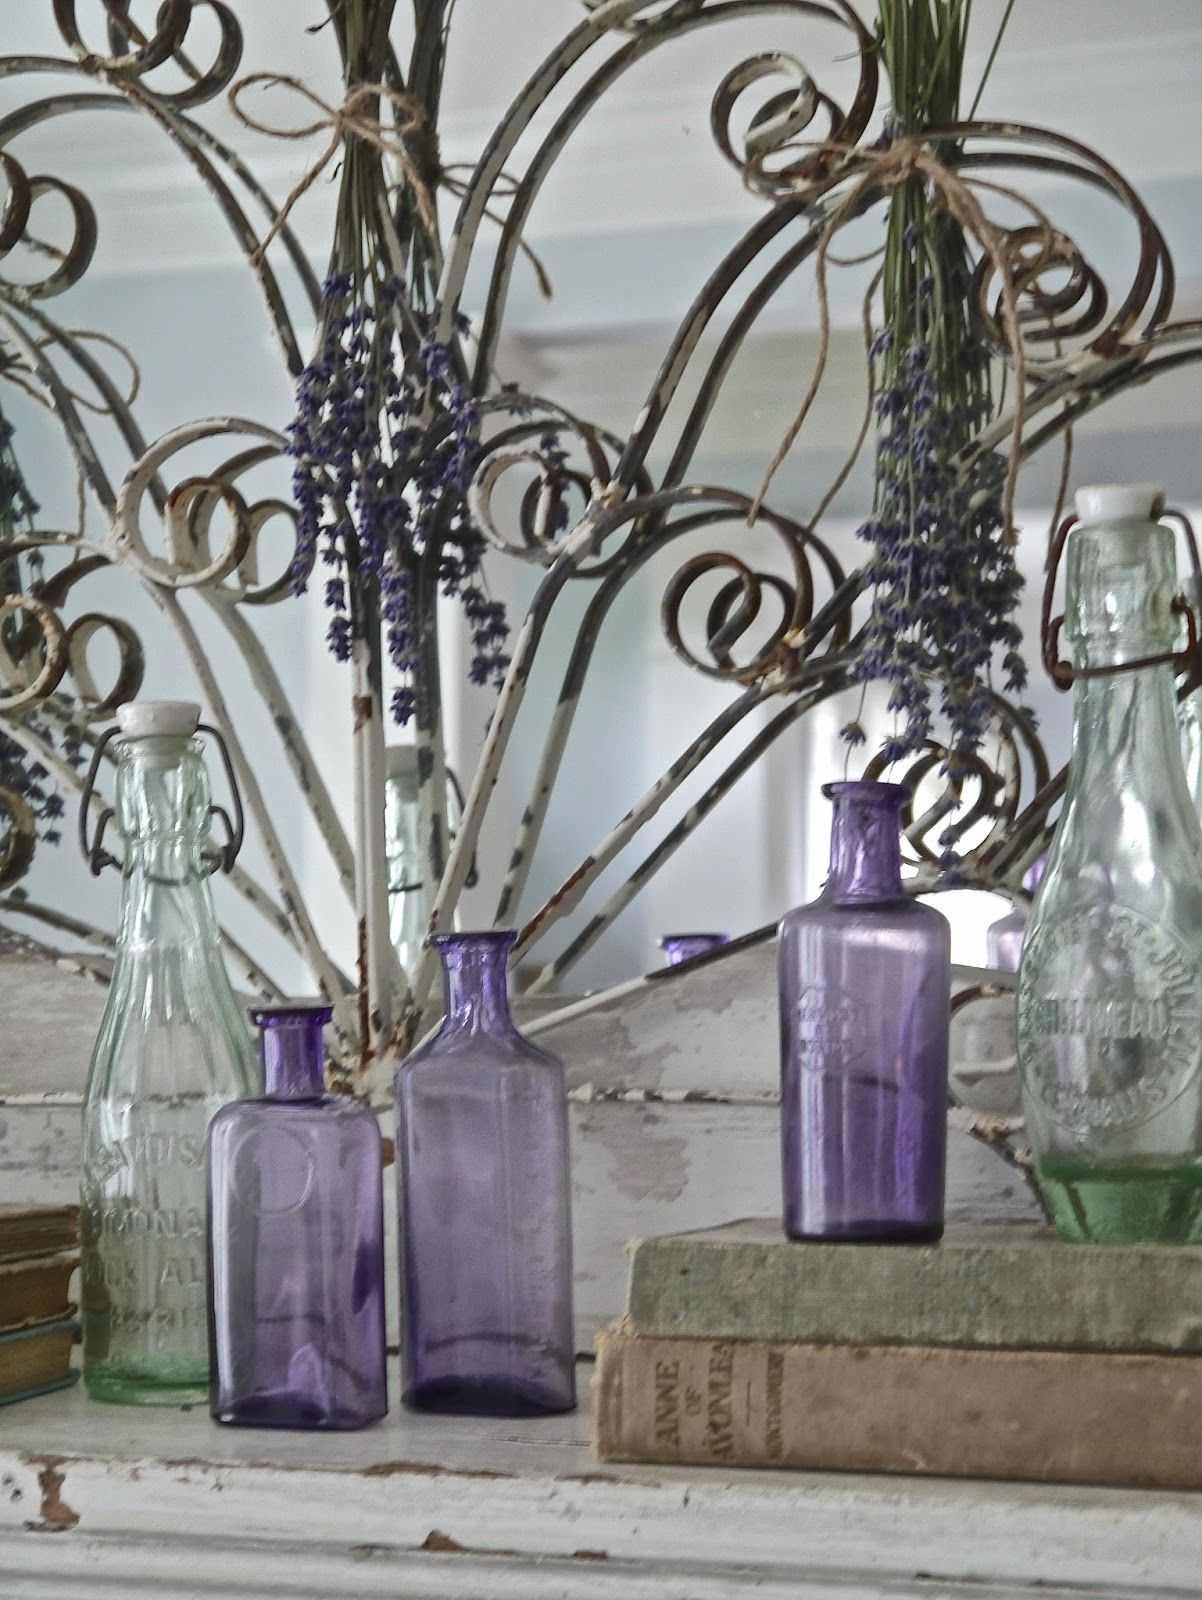 Chateau Chic - Using Dried Lavender